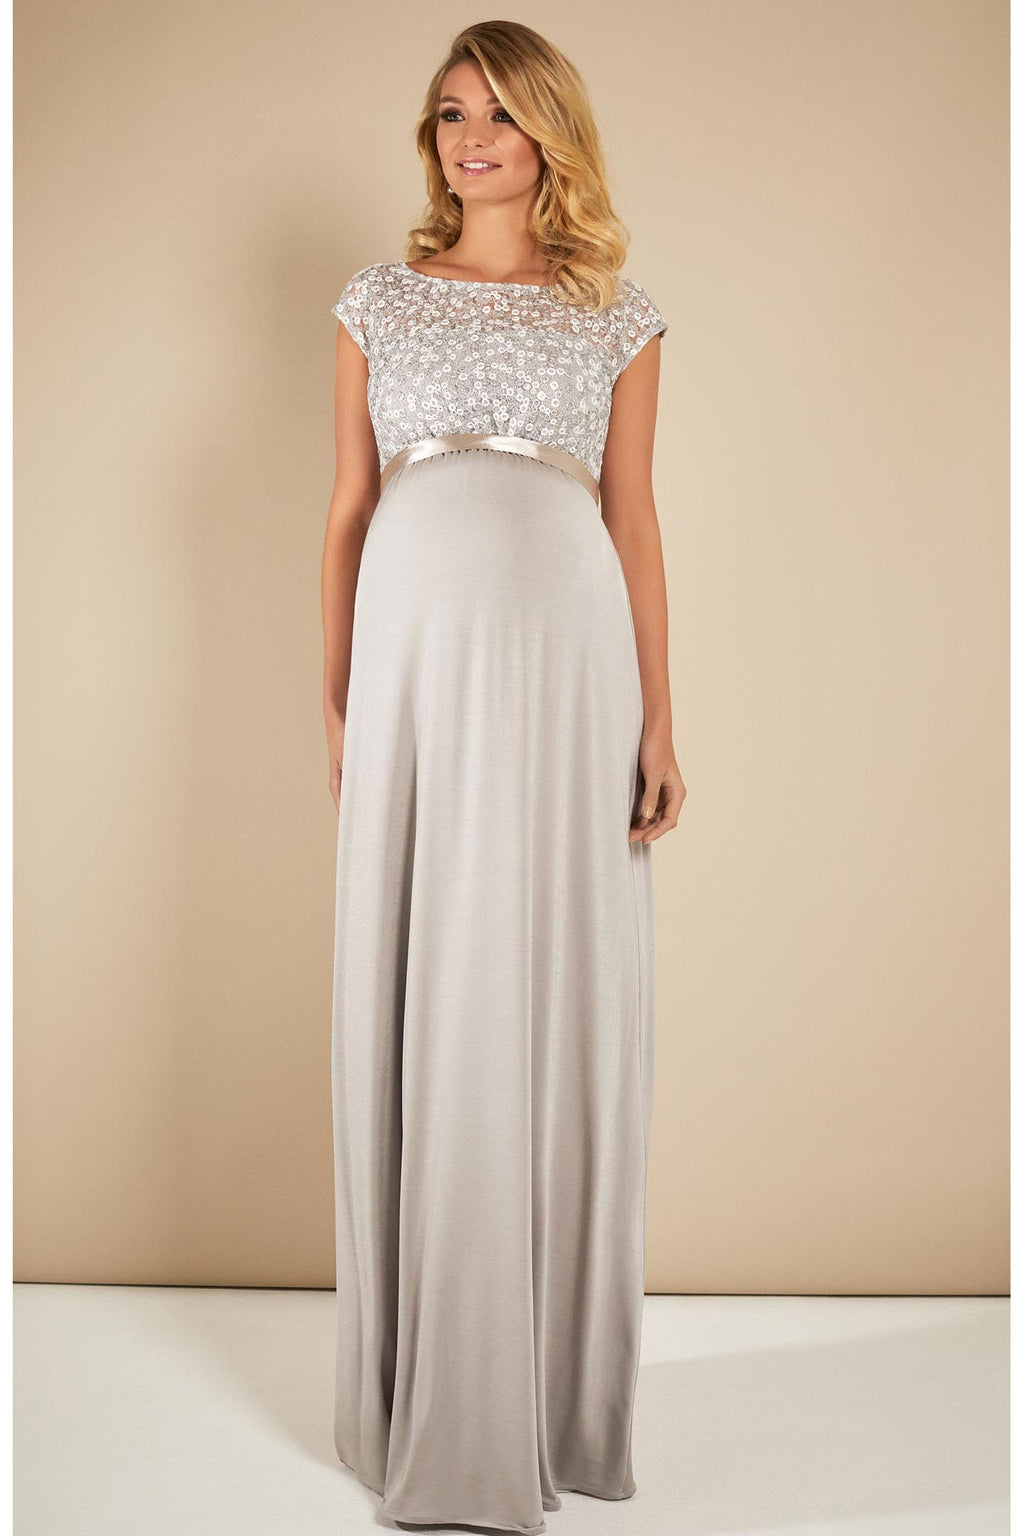 Tiffany Rose Mia maternity Gown in Silver